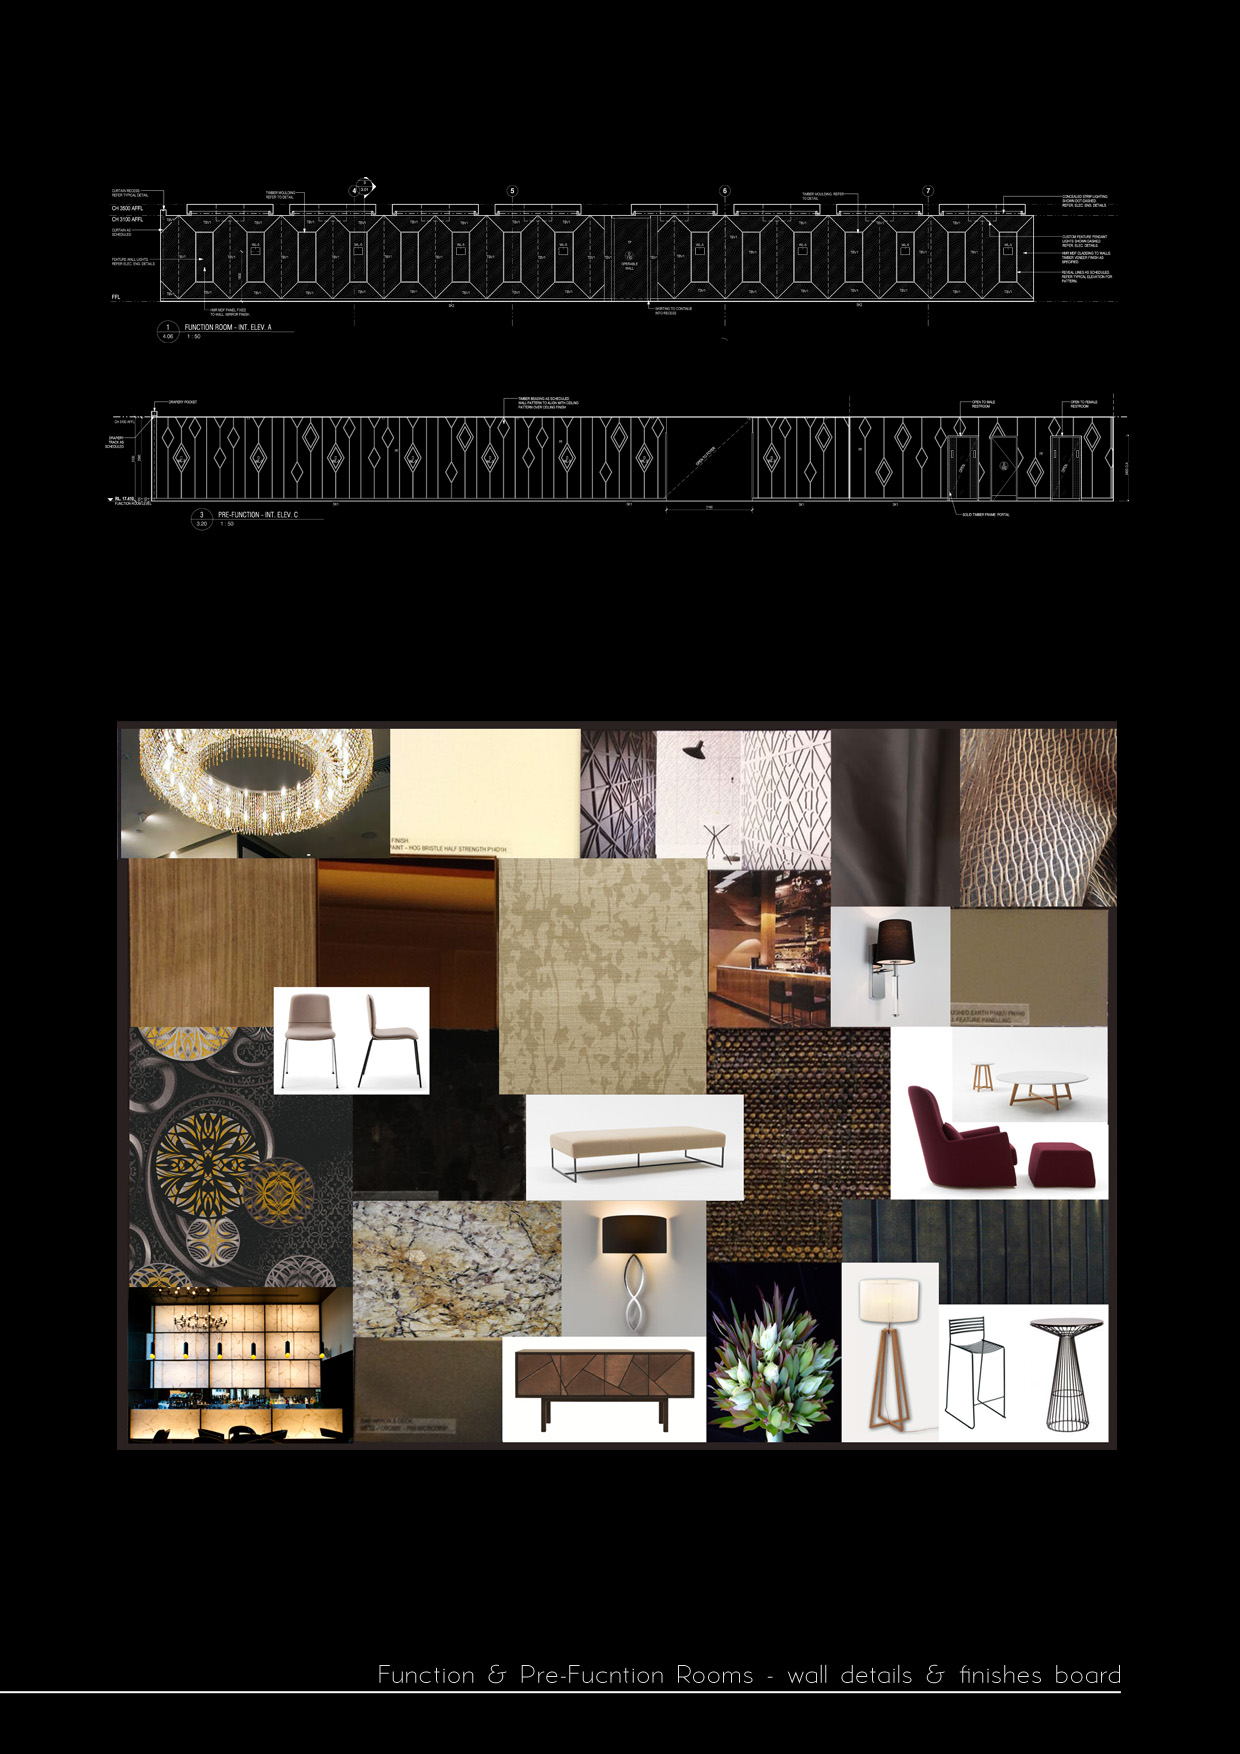 function room design concept board